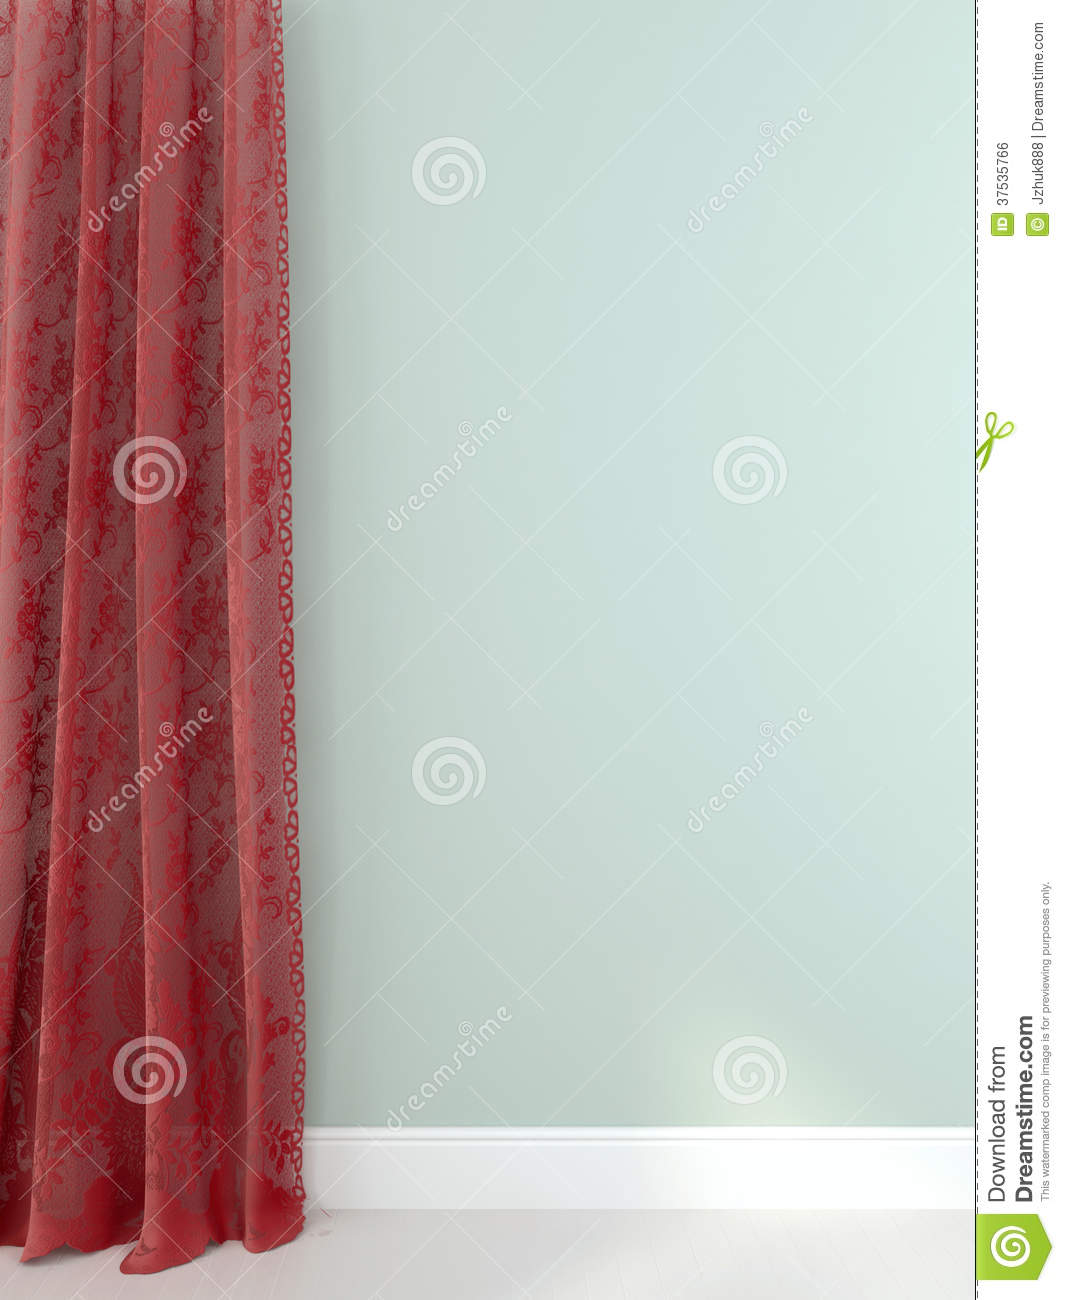 elegant red curtains against a light blue wall royalty free stock image image 37535766. Black Bedroom Furniture Sets. Home Design Ideas